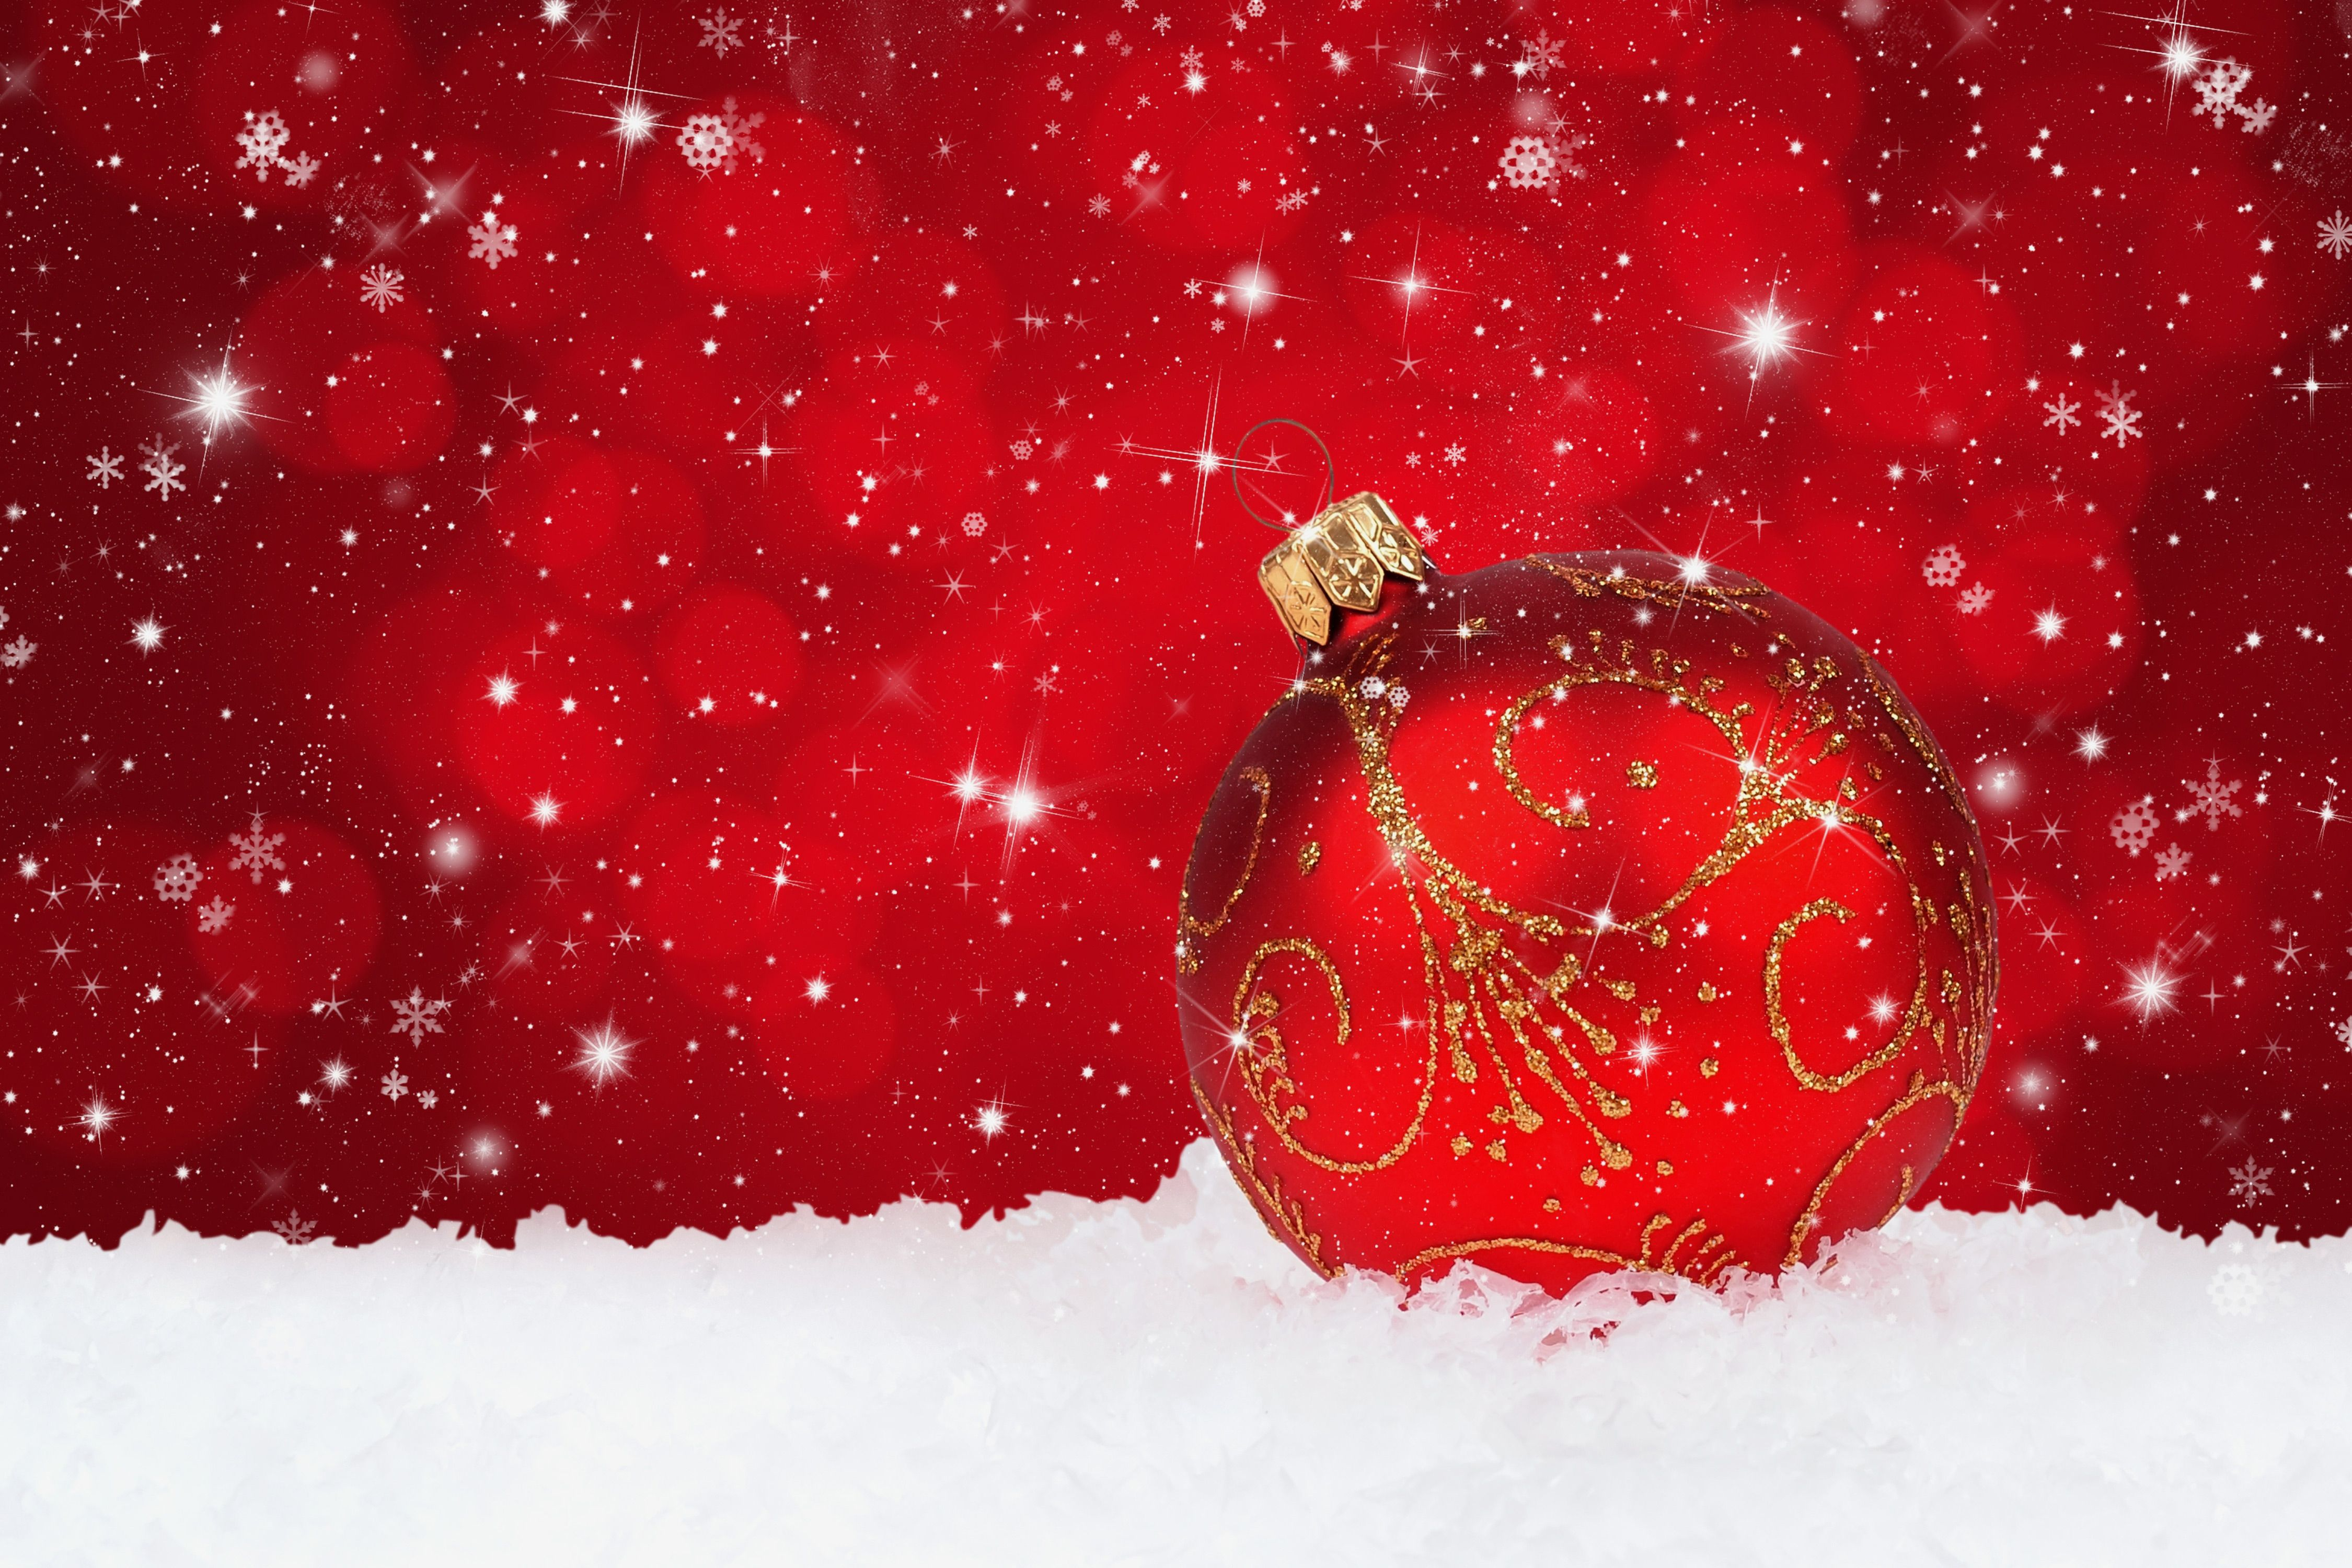 Red Christmas Snowy Background With Christmas Ball